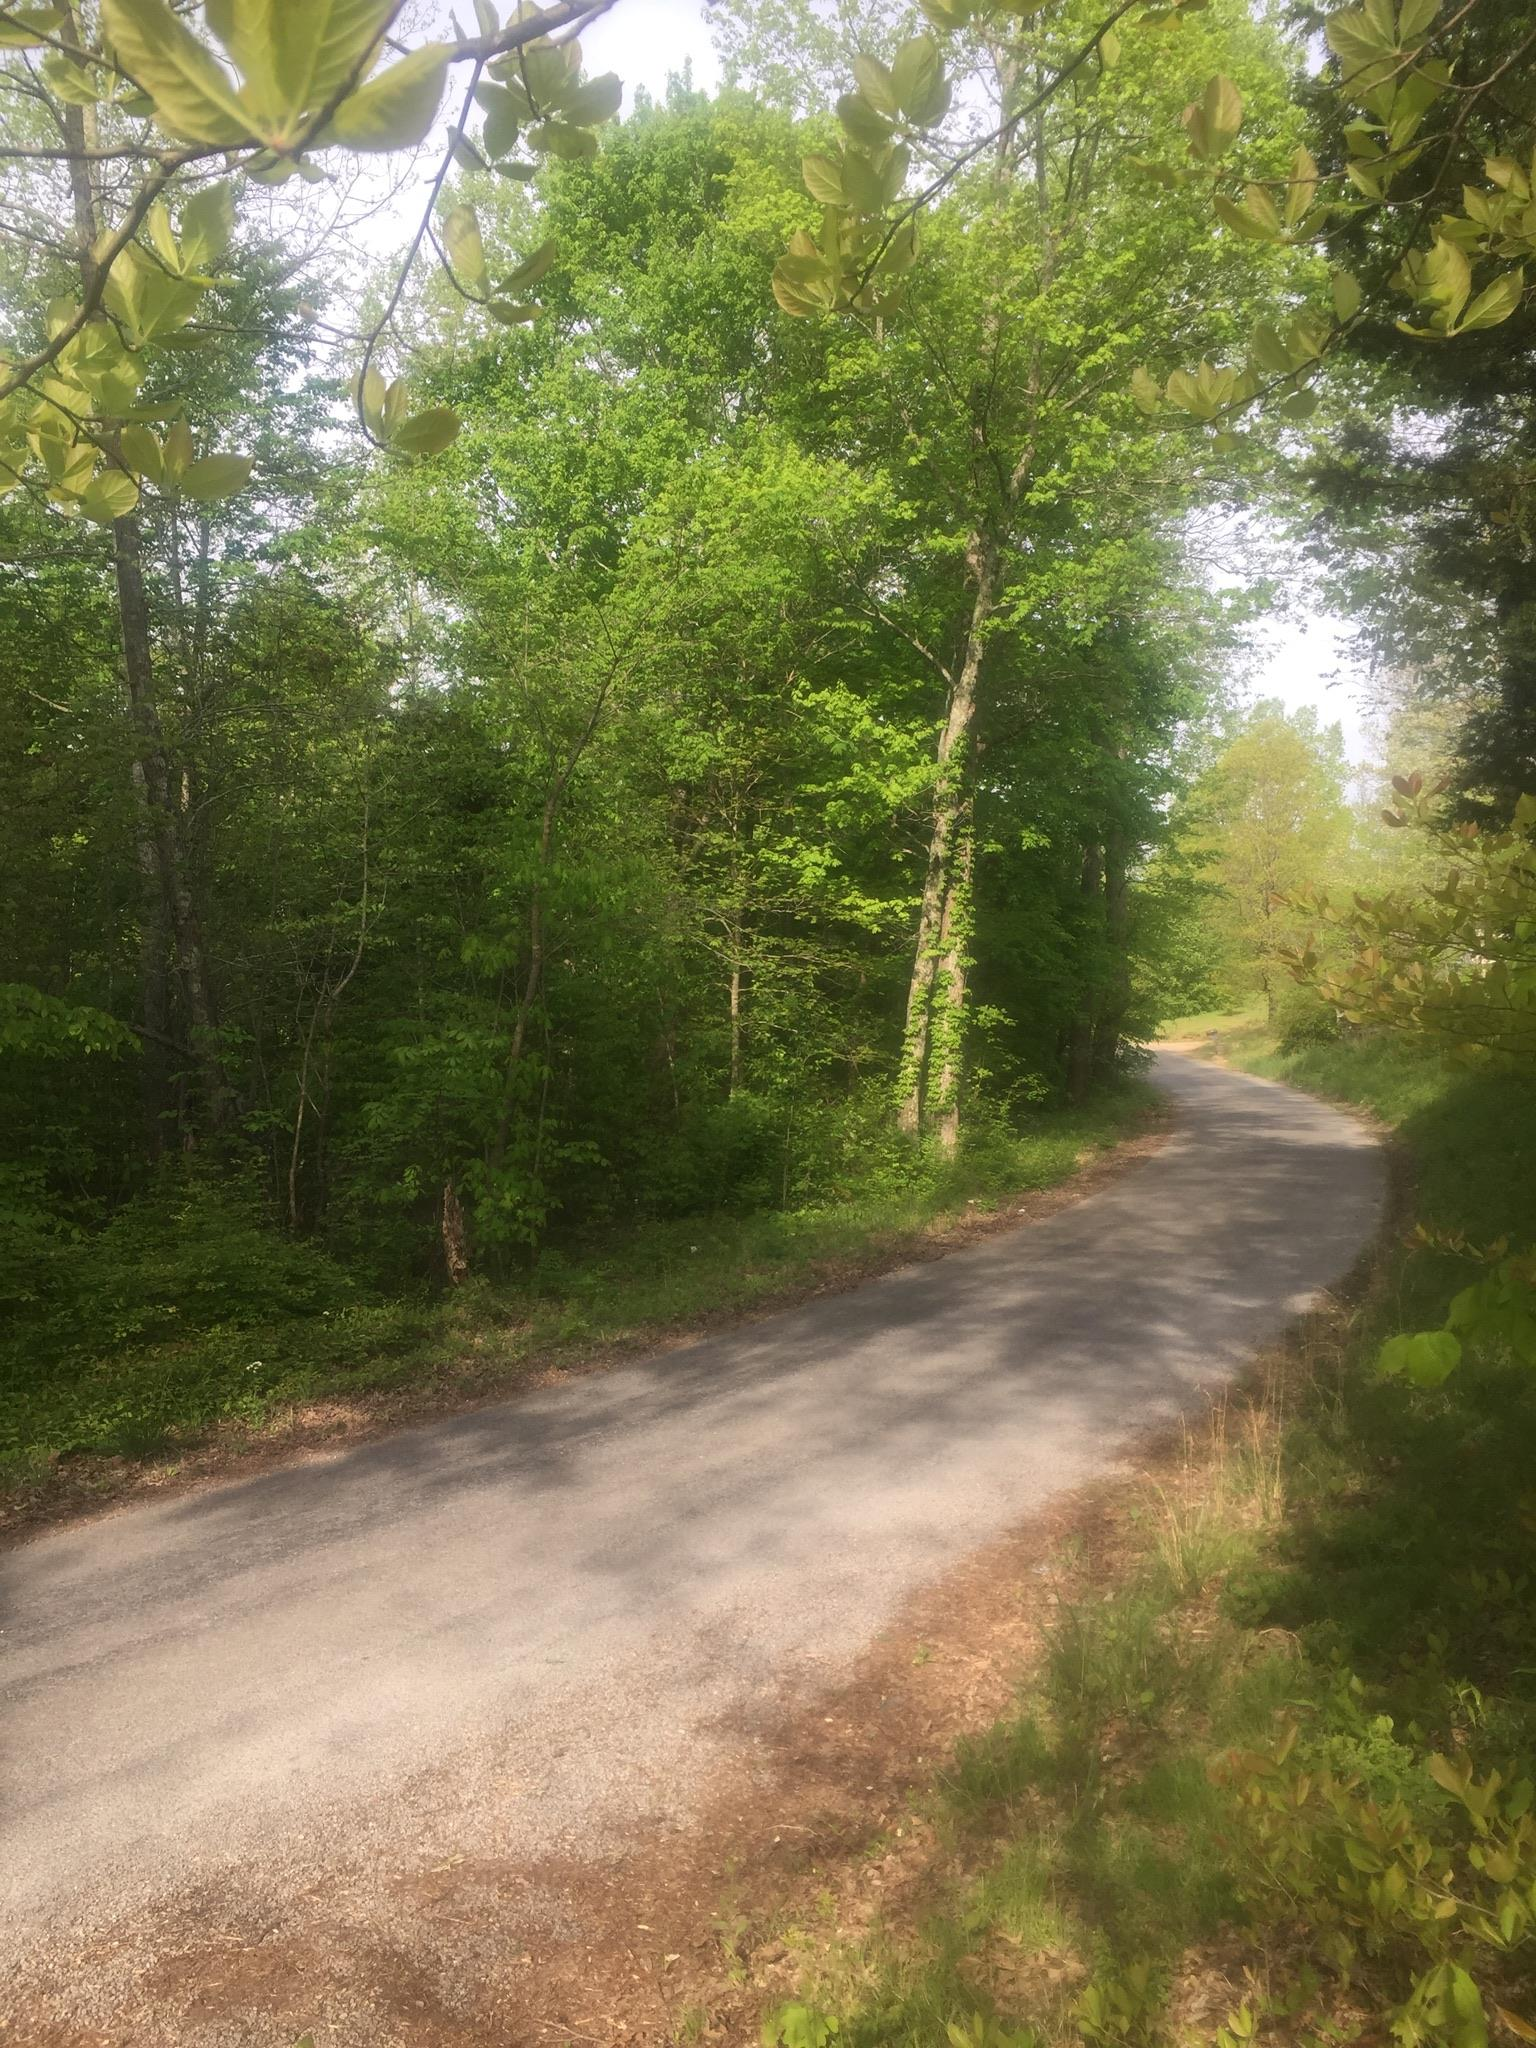 0 Elzie Williams Rd, Red Boiling Springs, TN 37150 - Red Boiling Springs, TN real estate listing